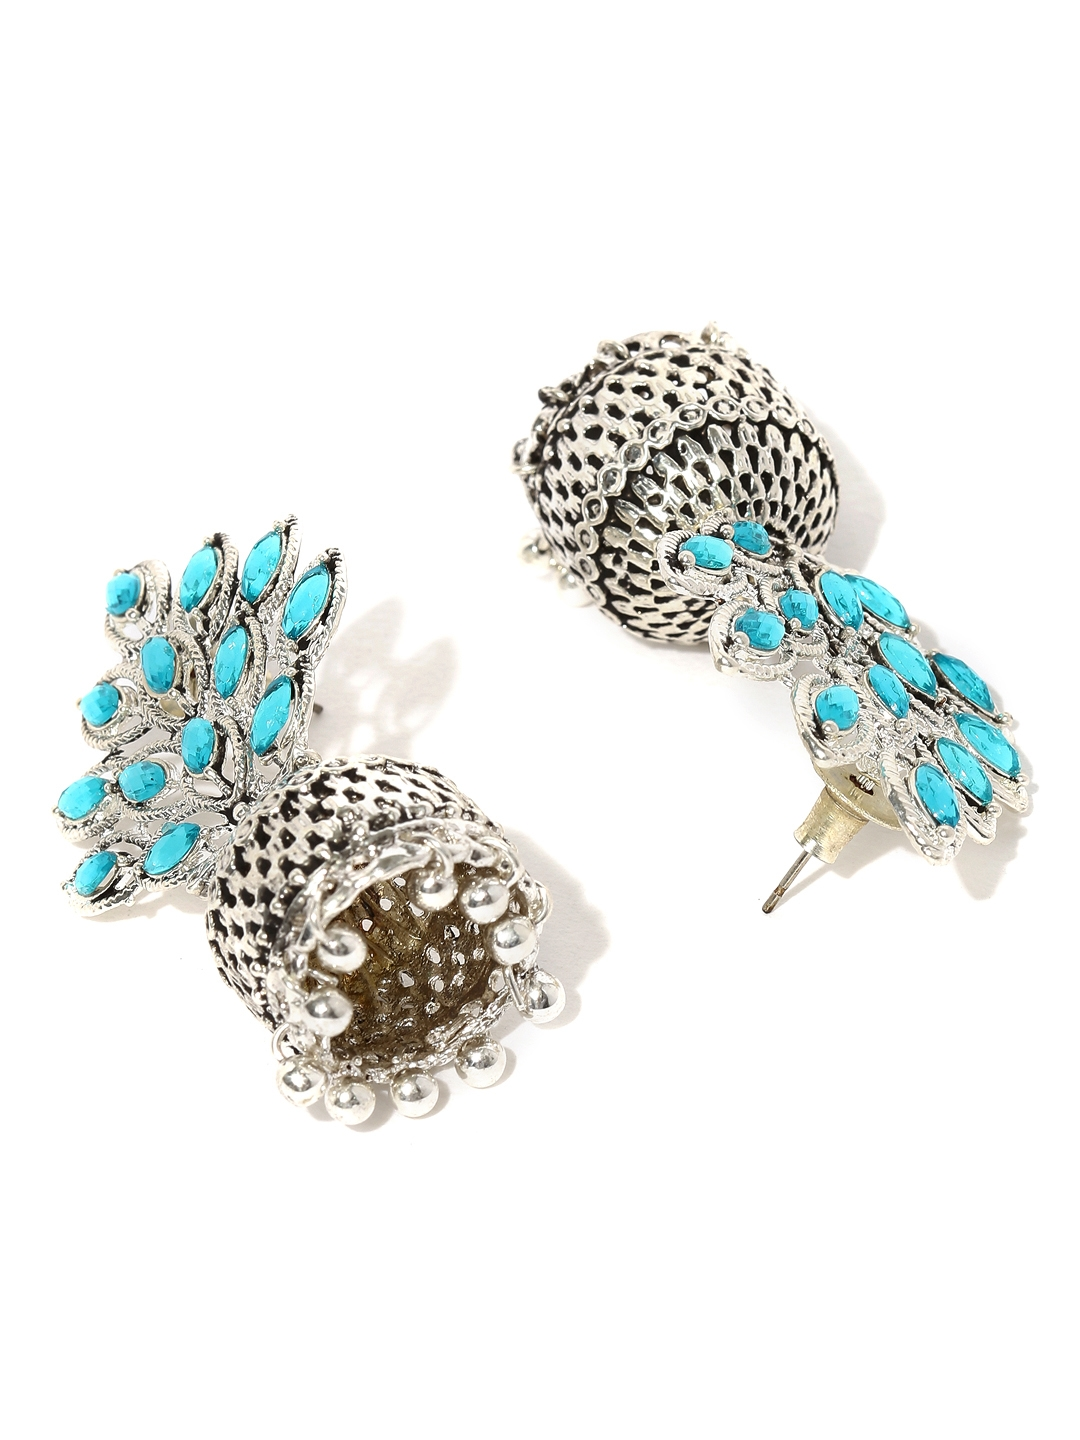 bde784a4655 Buy Zaveri Pearls Turquoise Blue Oxidised Silver Plated Jhumkas ...